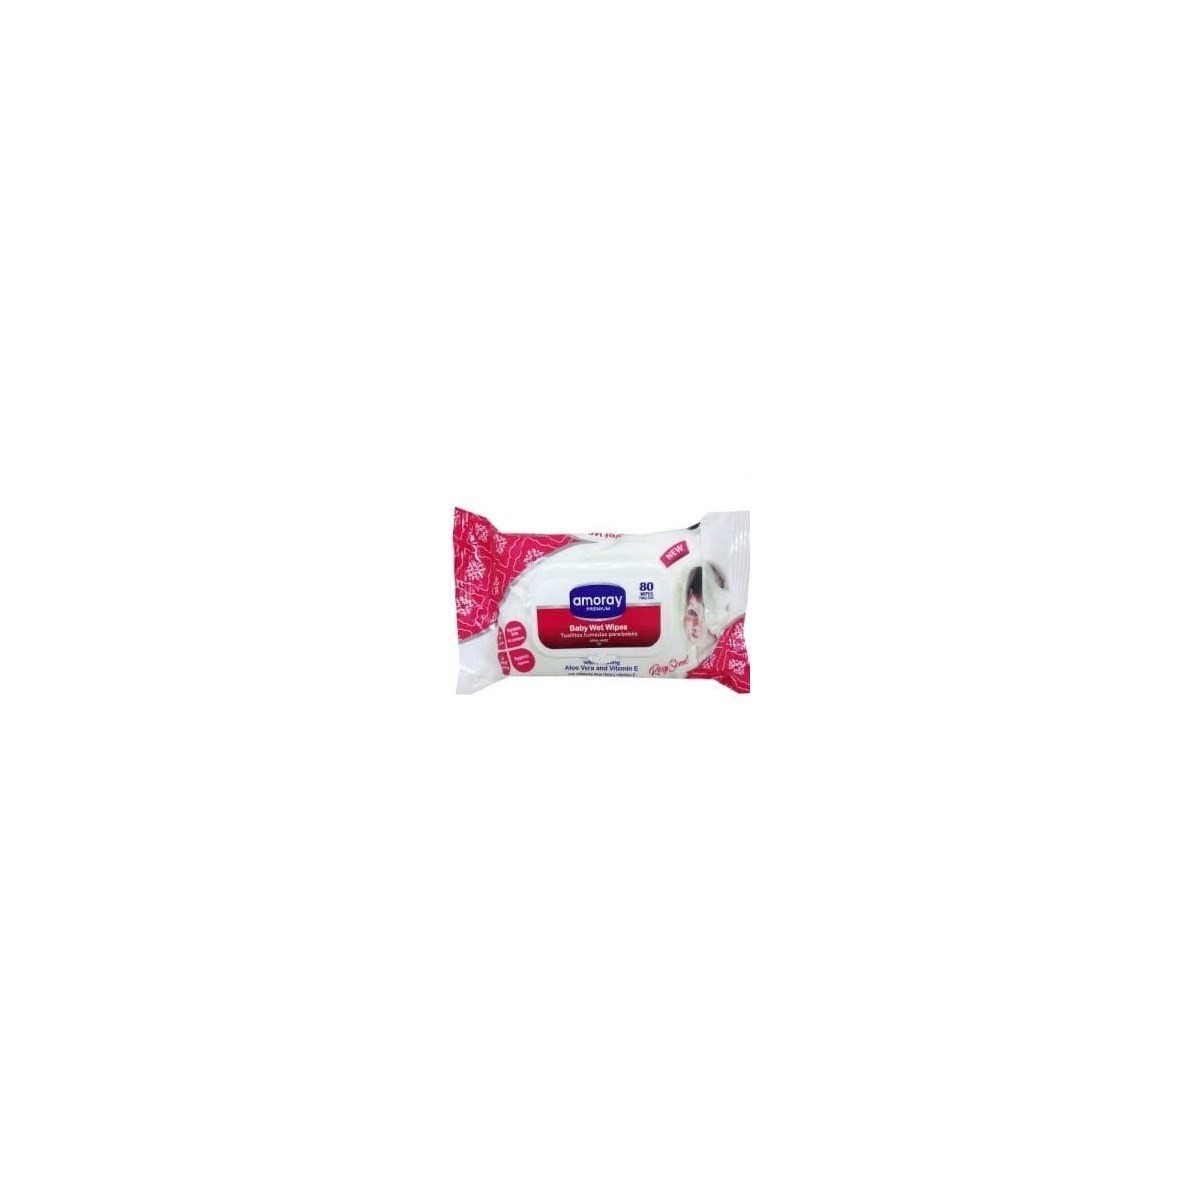 BABY WIPES ROSY SCENT 24/80CT